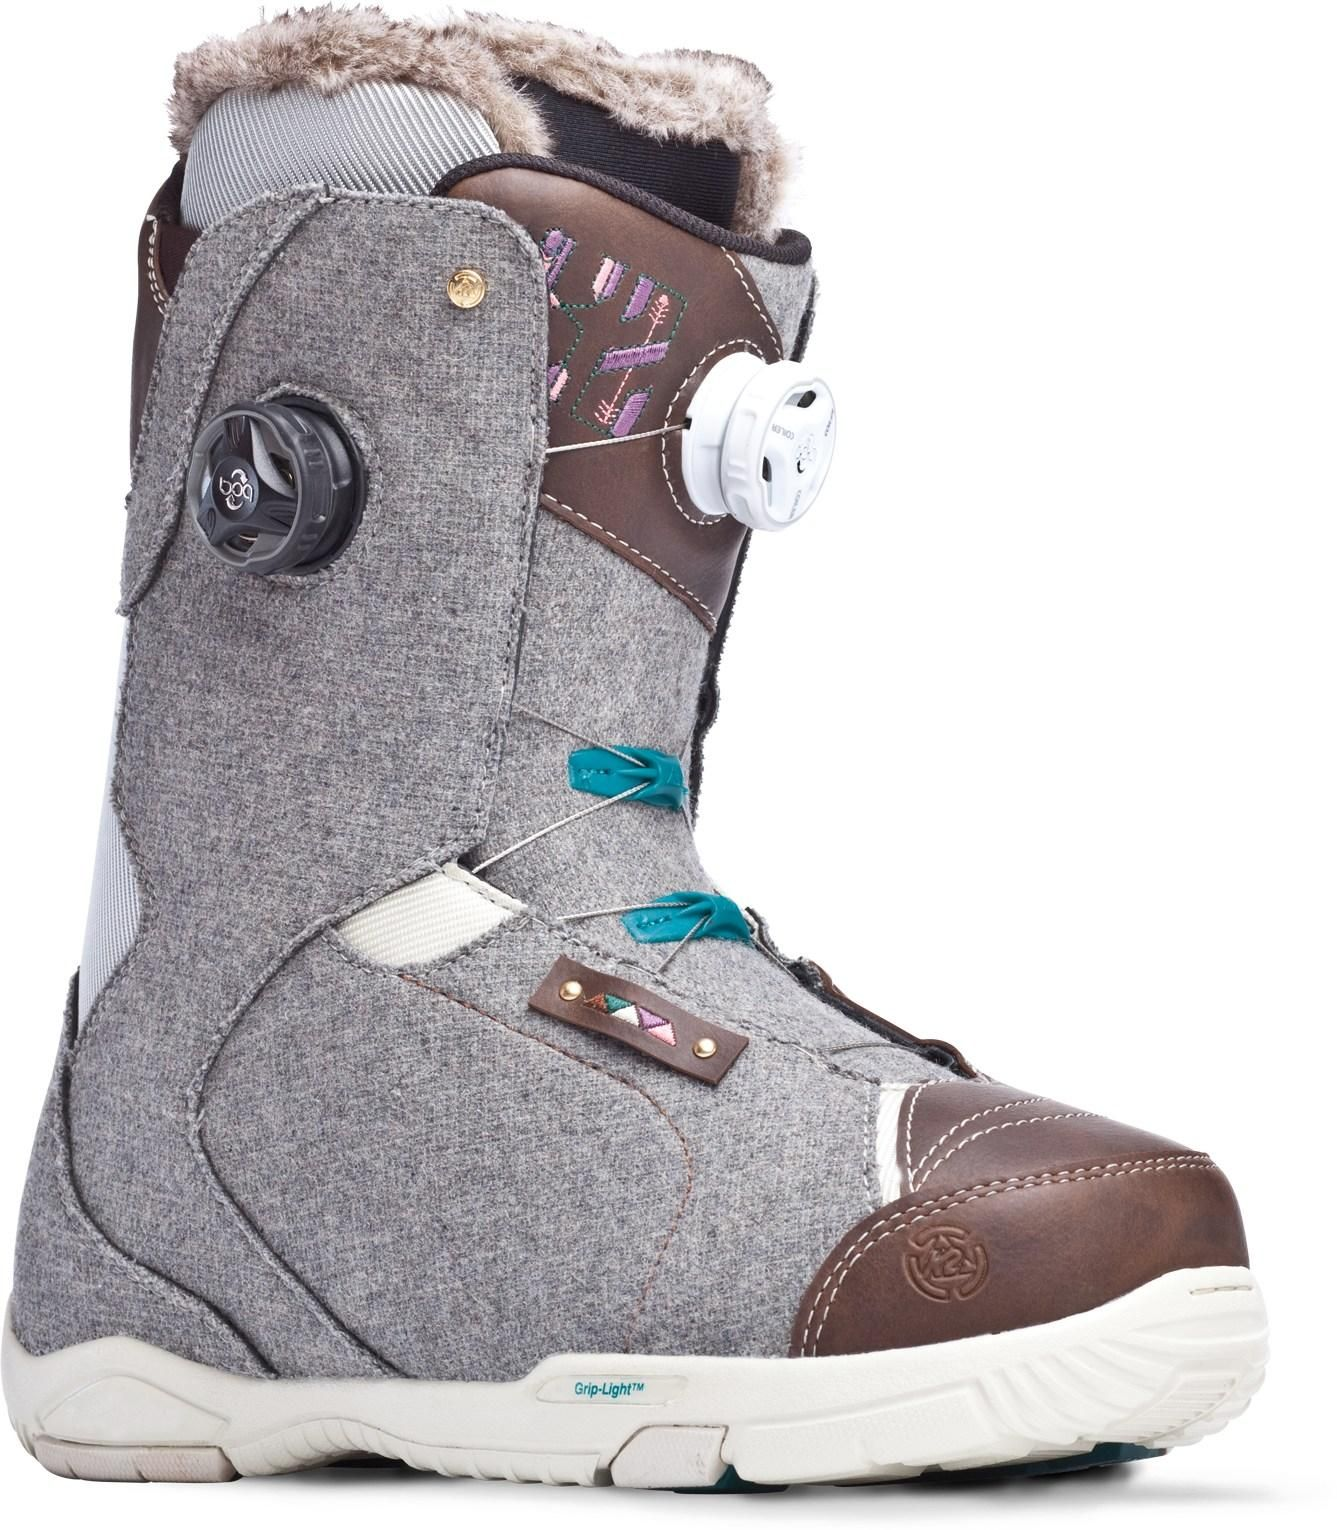 cab2760001b9a The high-end K2 Contour women's snowboard boots feature the Boa® Conda™  liner lacing system to lock down your heels, giving you amazing control  when ripping ...